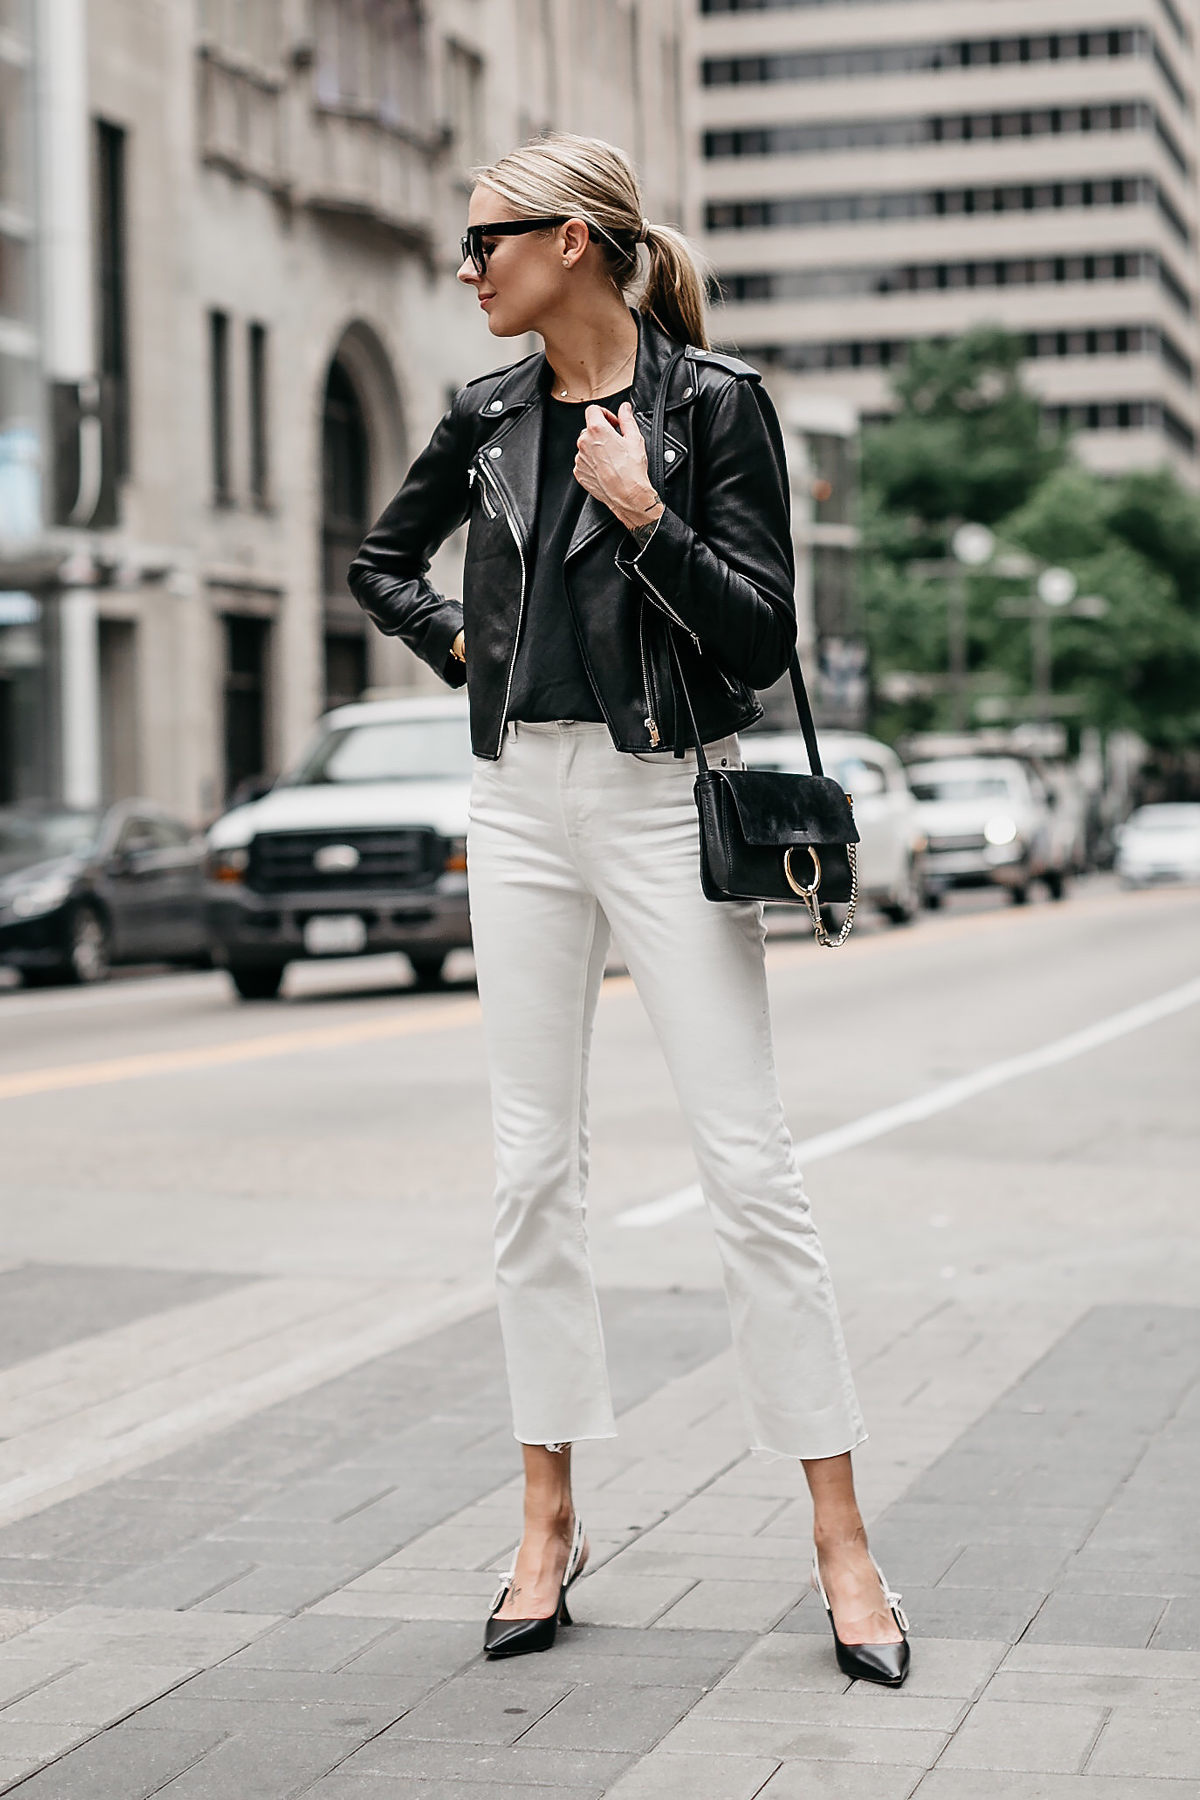 Blonde Woman Wearing Club Monaco Black Leather Jacket Everlane White Crop Jeans Chloe Faye Black Handbag Dior Black Slingbacks Fashion Jackson Dallas Blogger Fashion Blogger Street Style